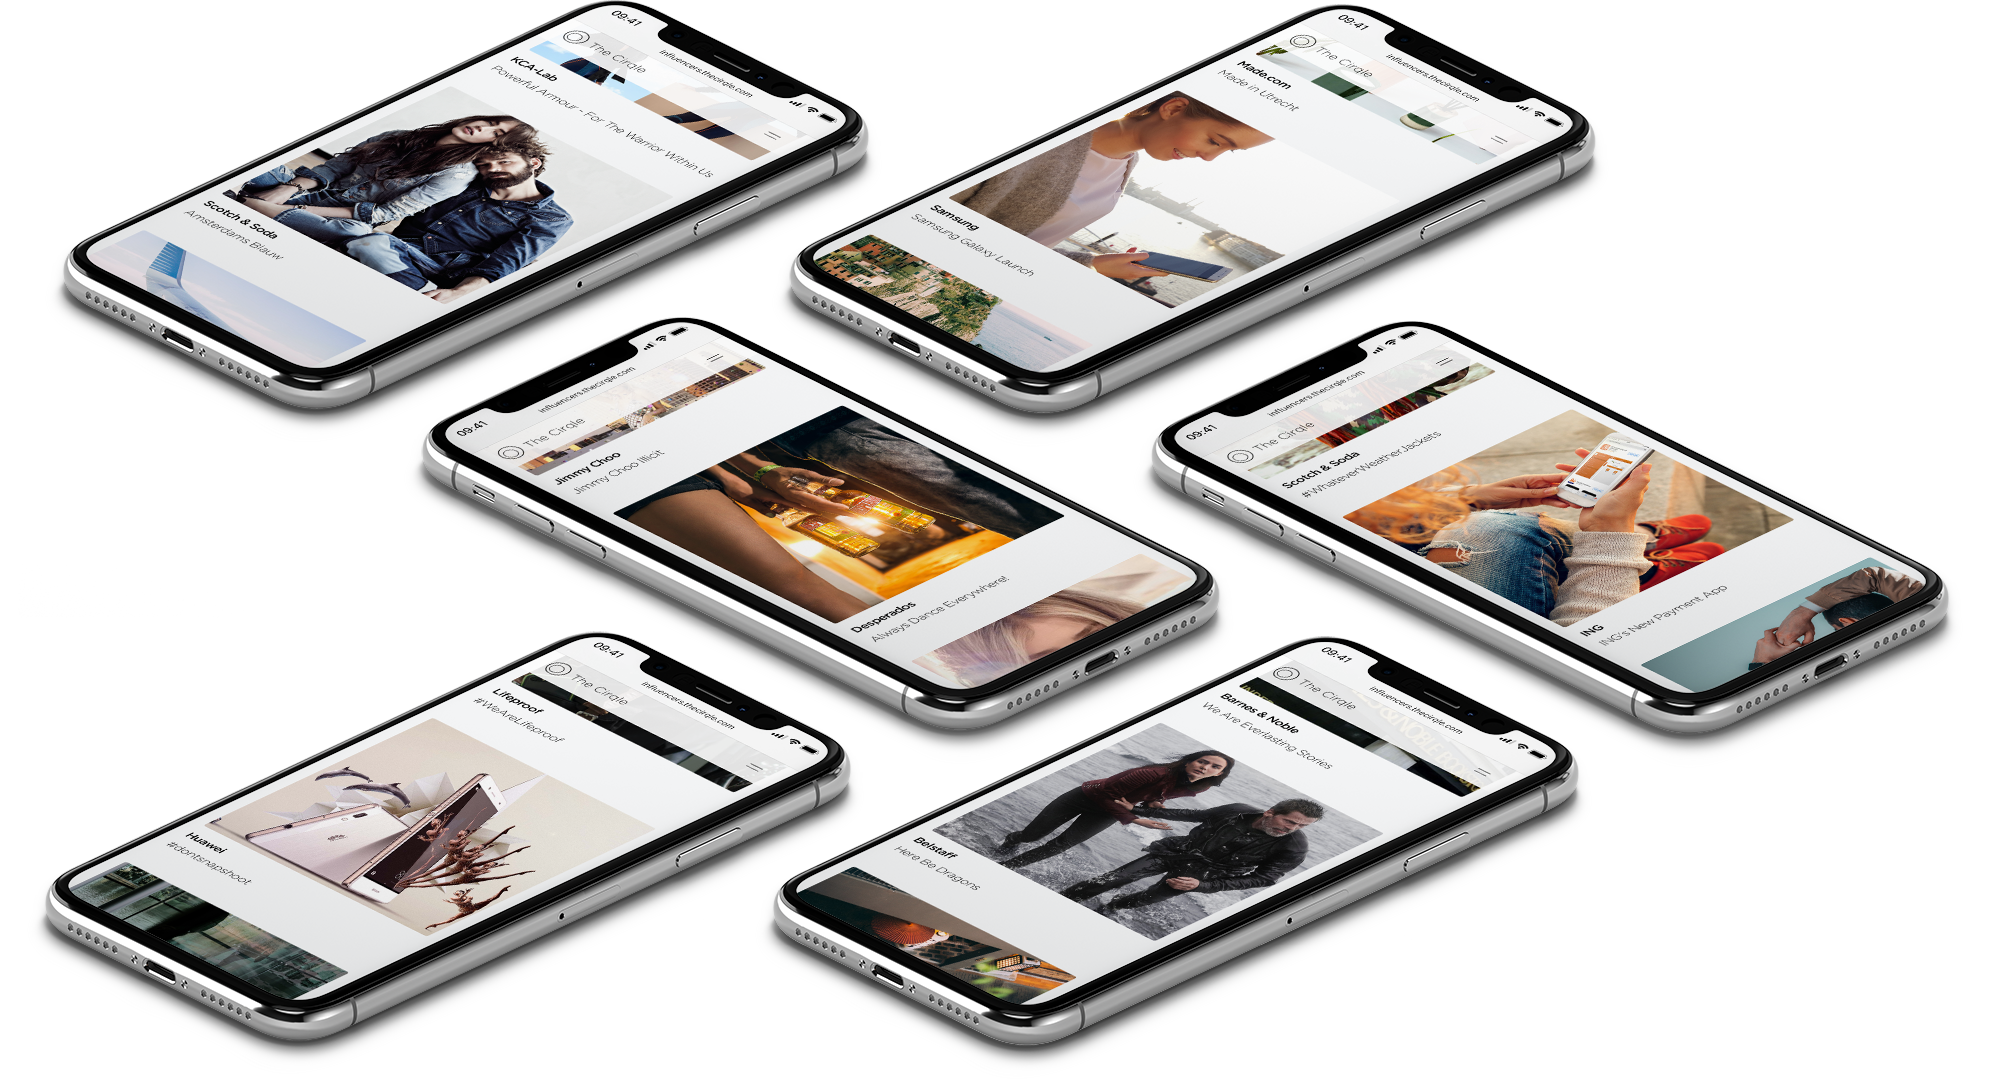 mockup_influencer-dashboard_expired-campaigns_iphonex.jpg